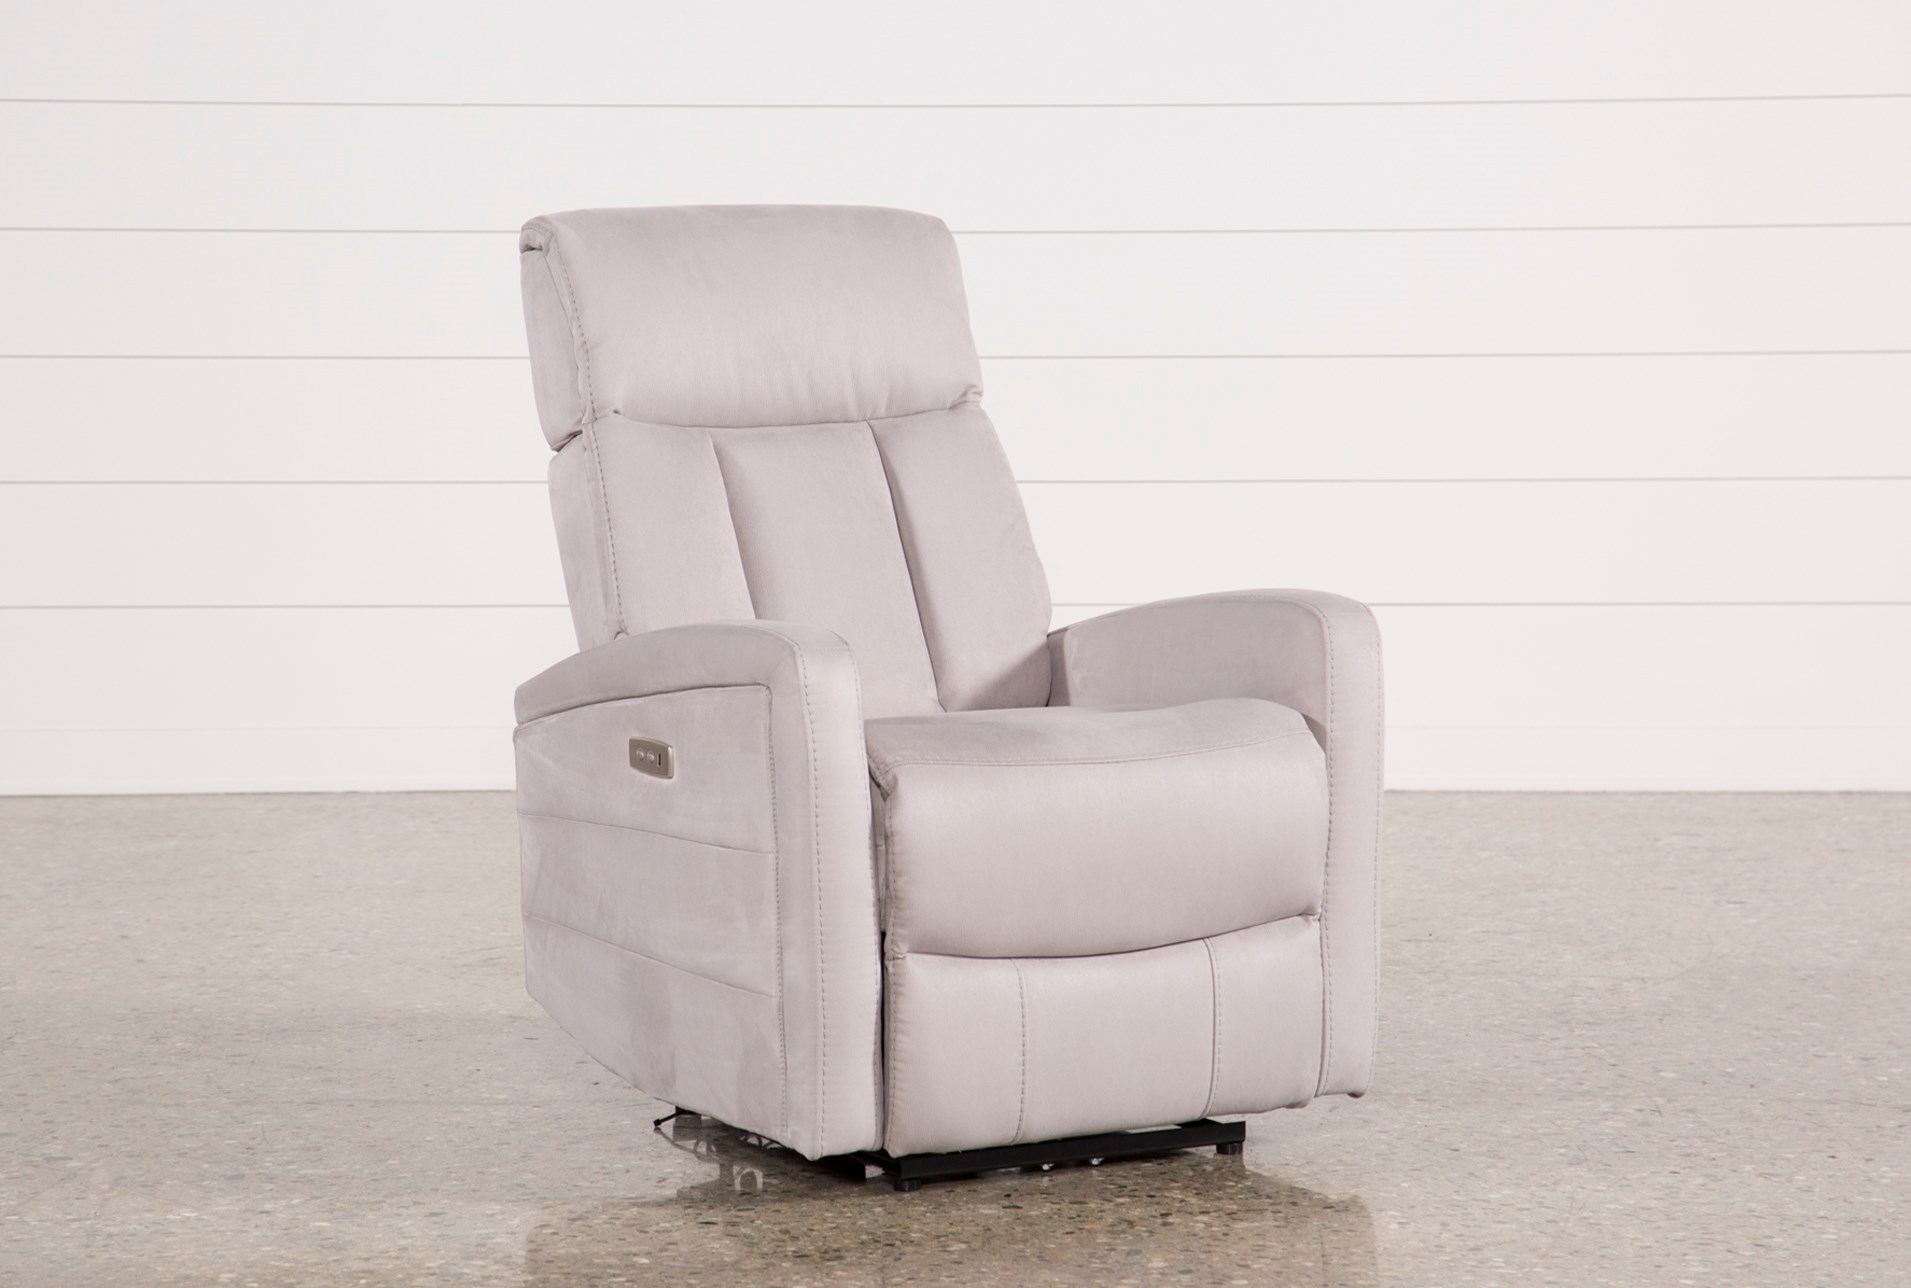 Well-liked Wallaway Recliners for Your Home & Office | Living Spaces UC12